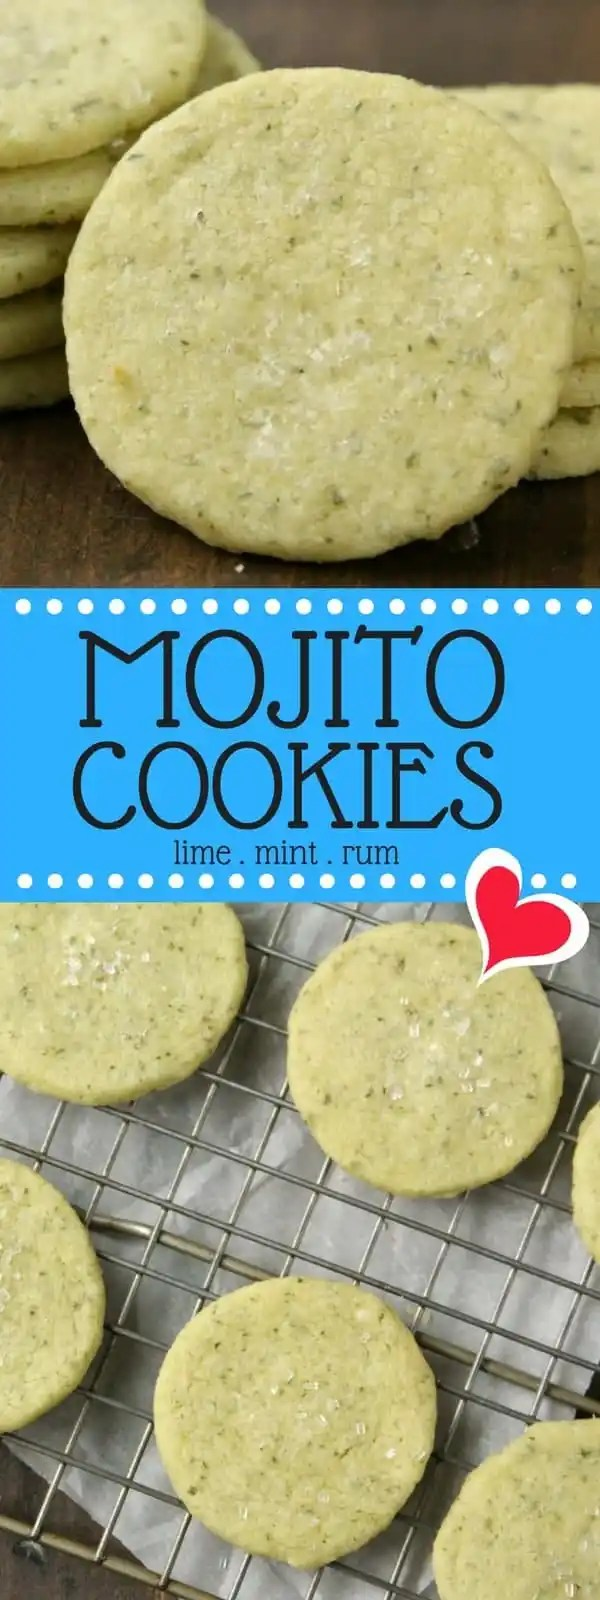 Mojito Cookies Recipe - easy lime, mint, and rum shortbread cookie recipe just like the original mojito cocktail. SnappyGourmet.com